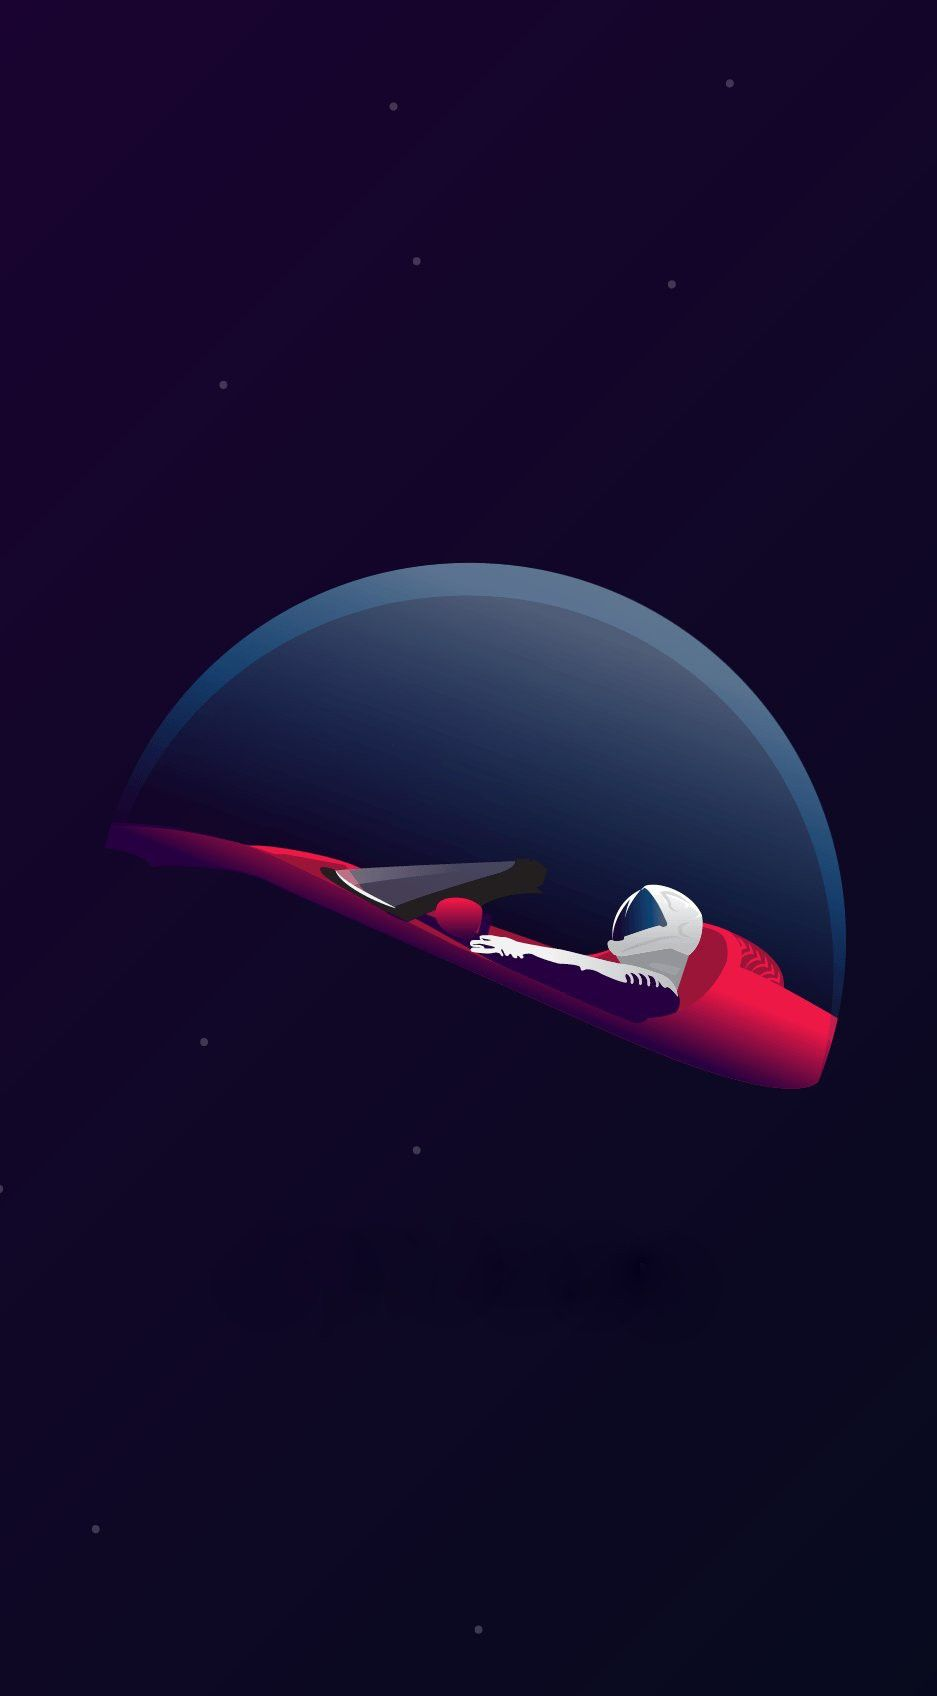 Tesla Spacex Space Iphone Wallpaper Space Phone Wallpaper Technology Wallpaper